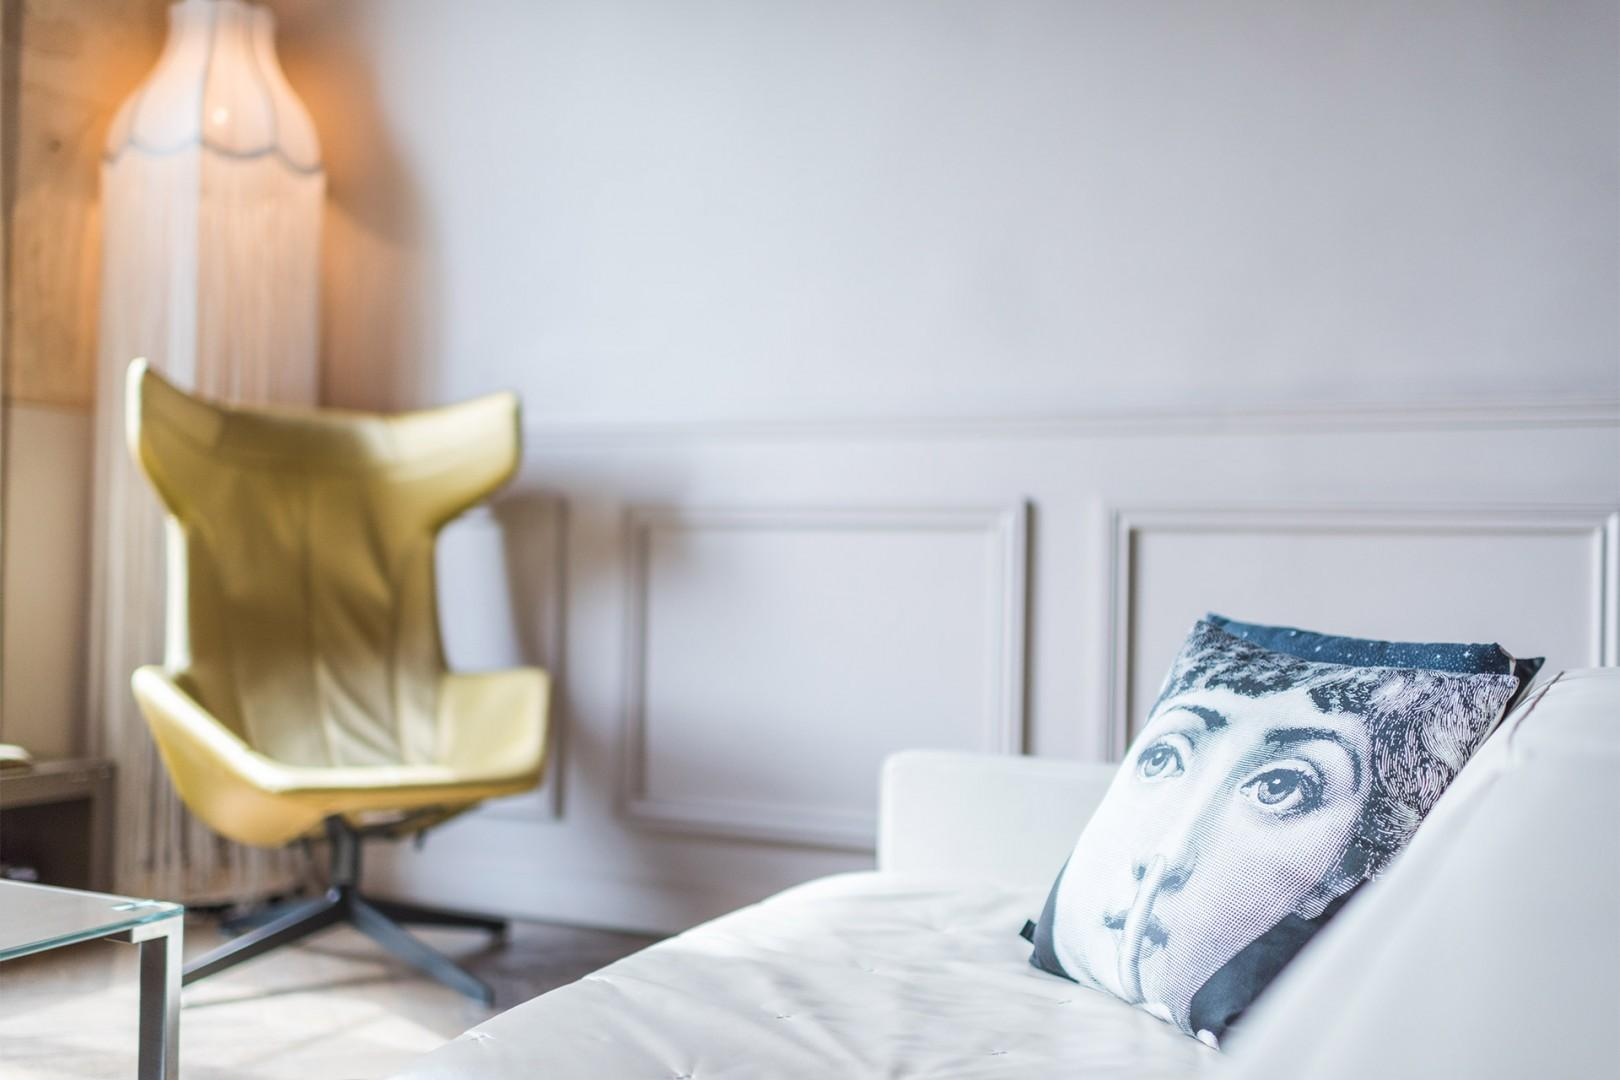 Relax in the stylish Ladoix after a day exploring the city.